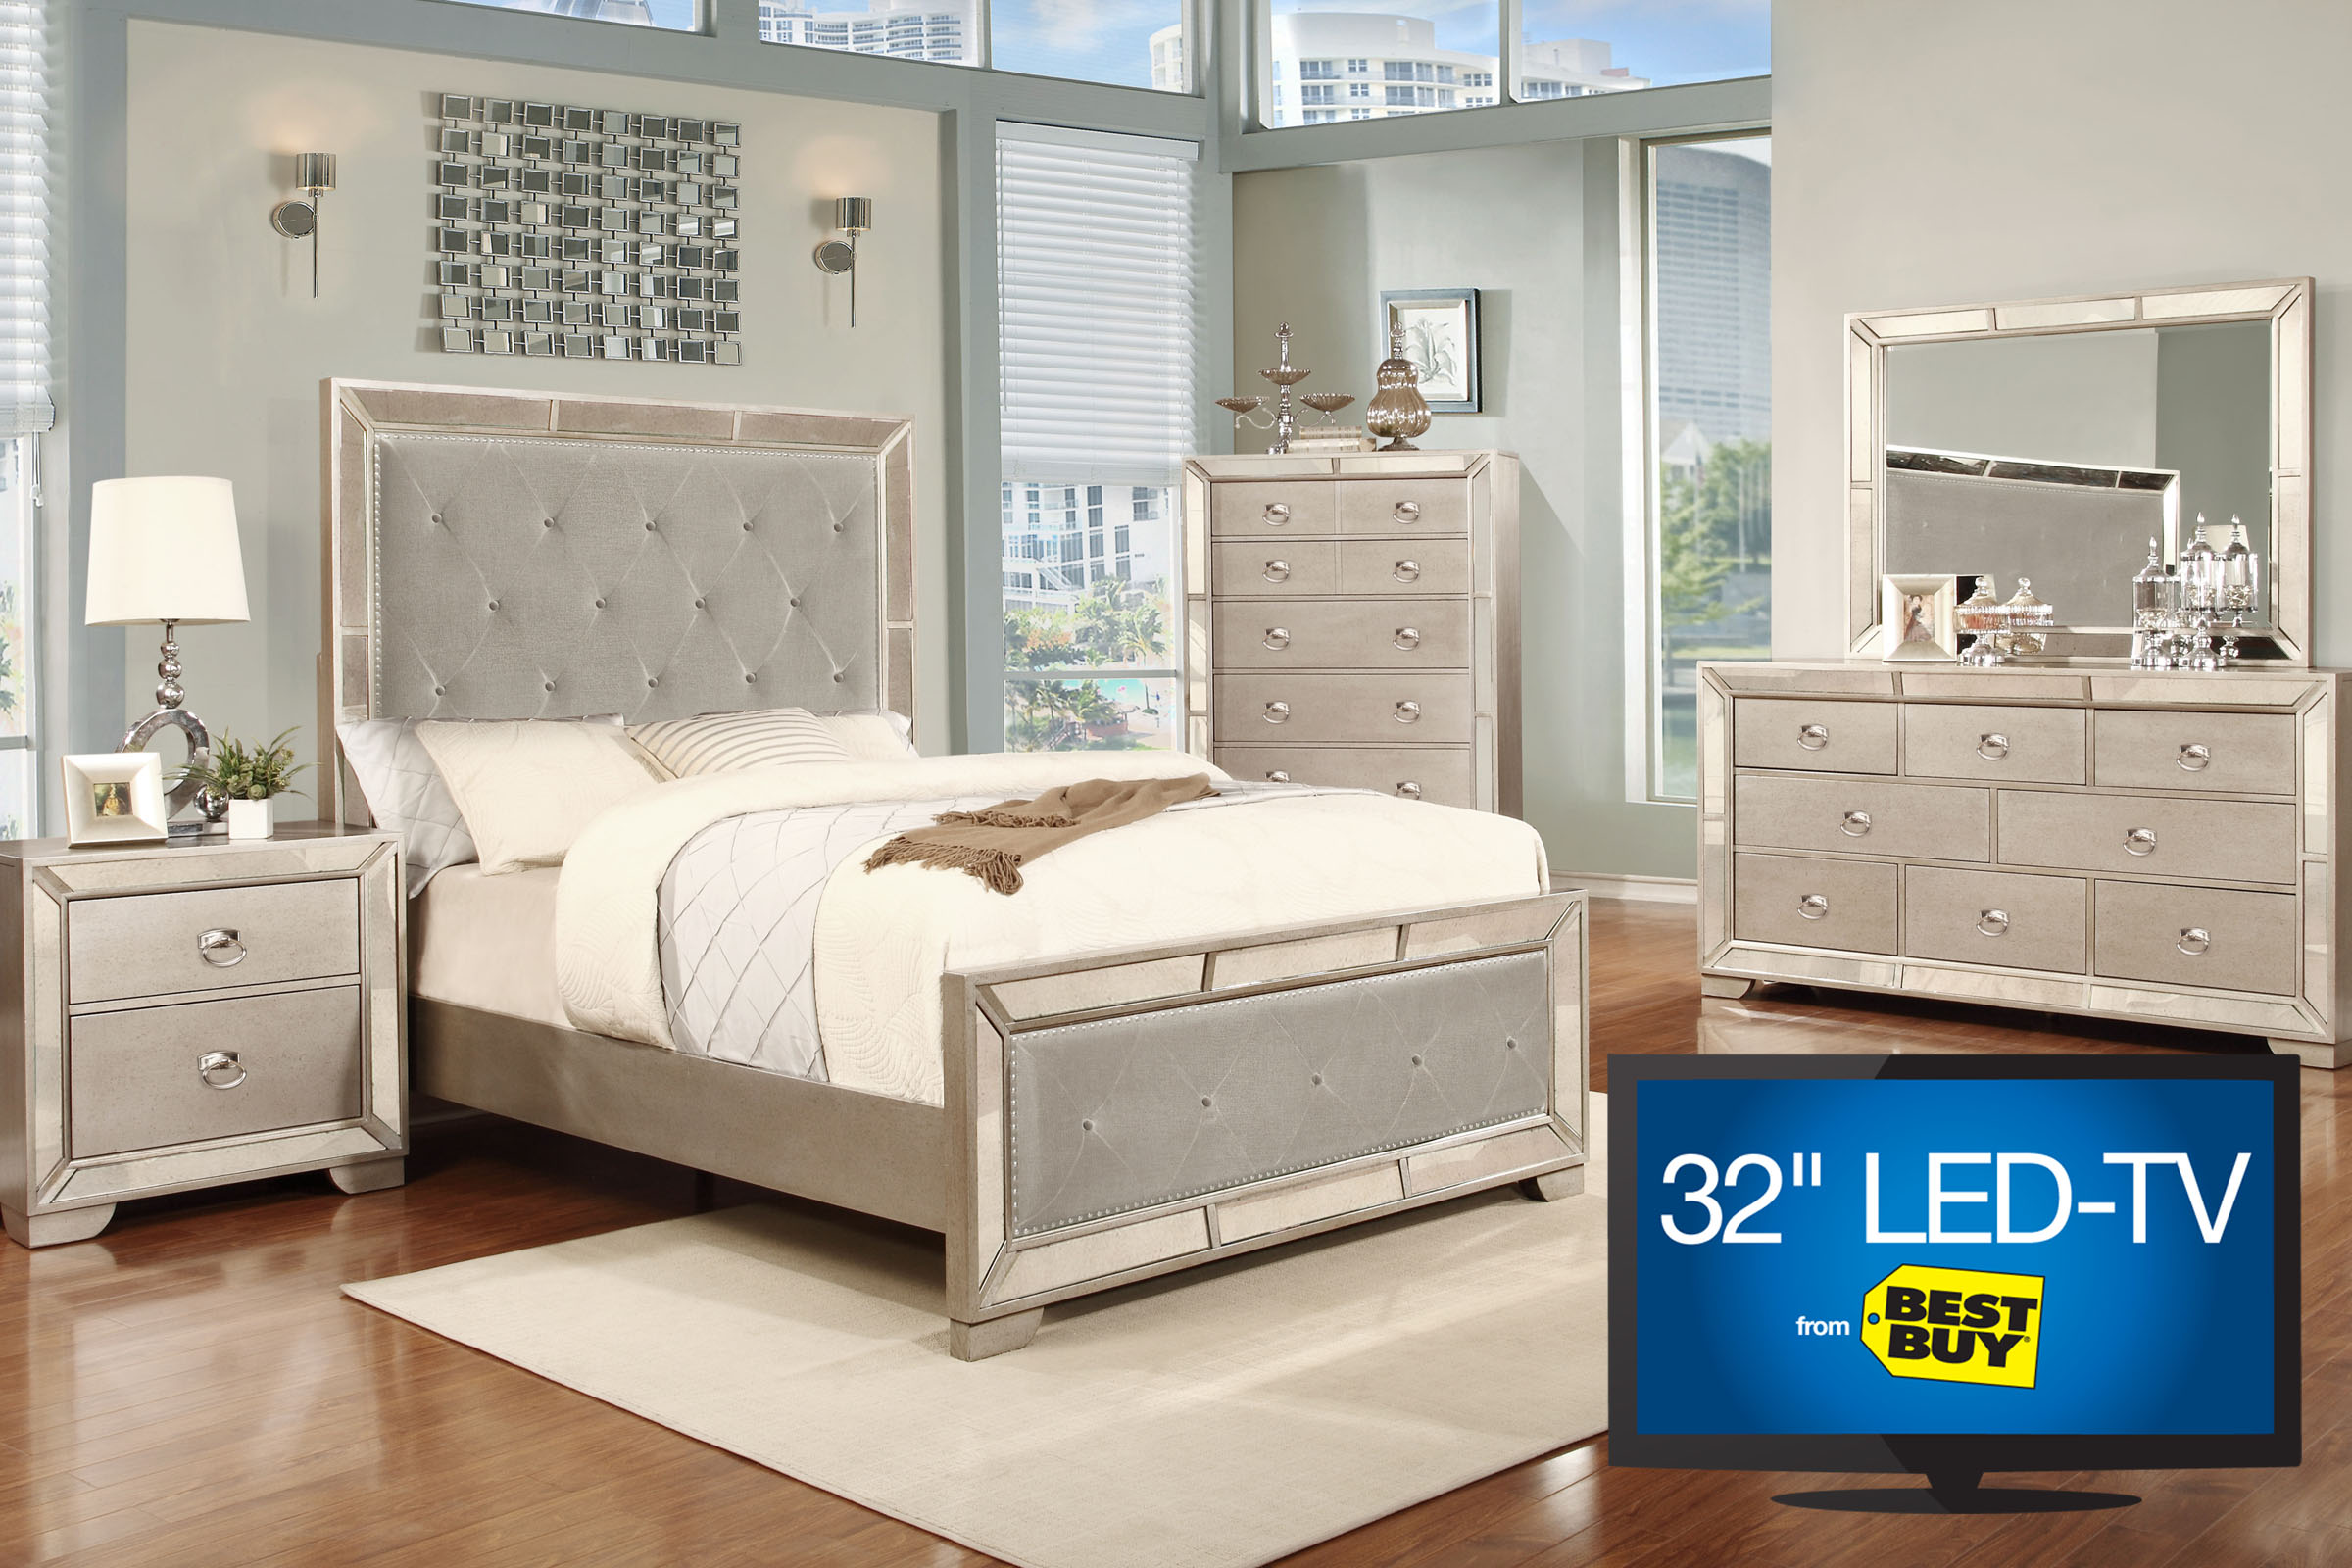 "Image 5 Piece Queen Bedroom Set with 32"" LED TV"